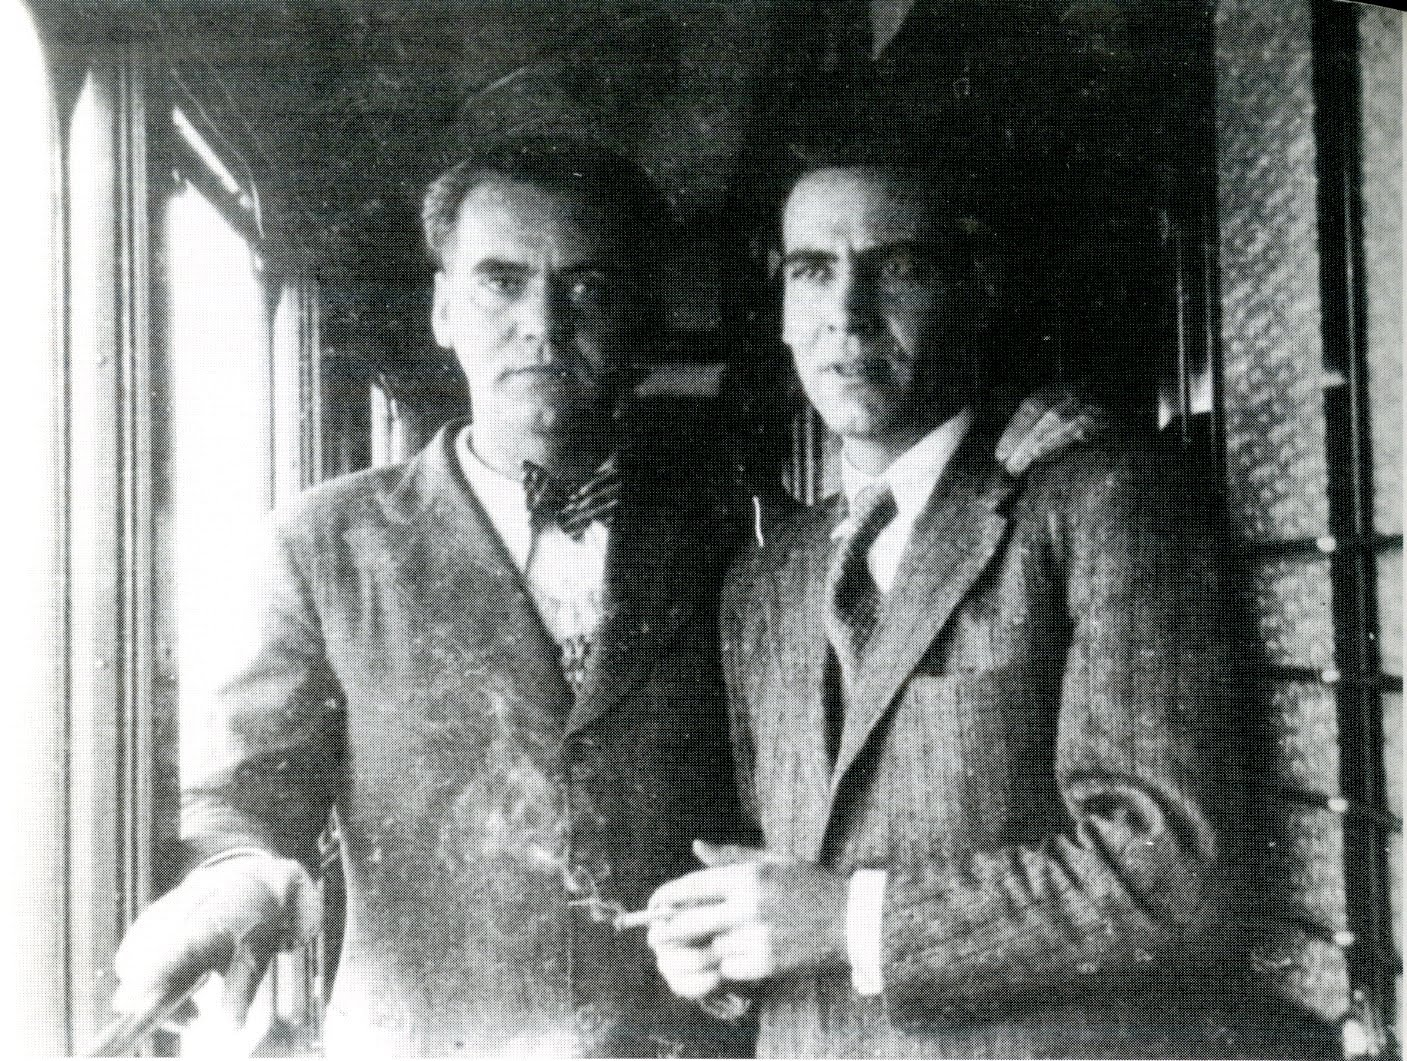 an introduction to the life of federico garcia lorca Memorial to federico gracia lorca in federico garcia lorca is not only spain's the harshness and materialism of american life in the.